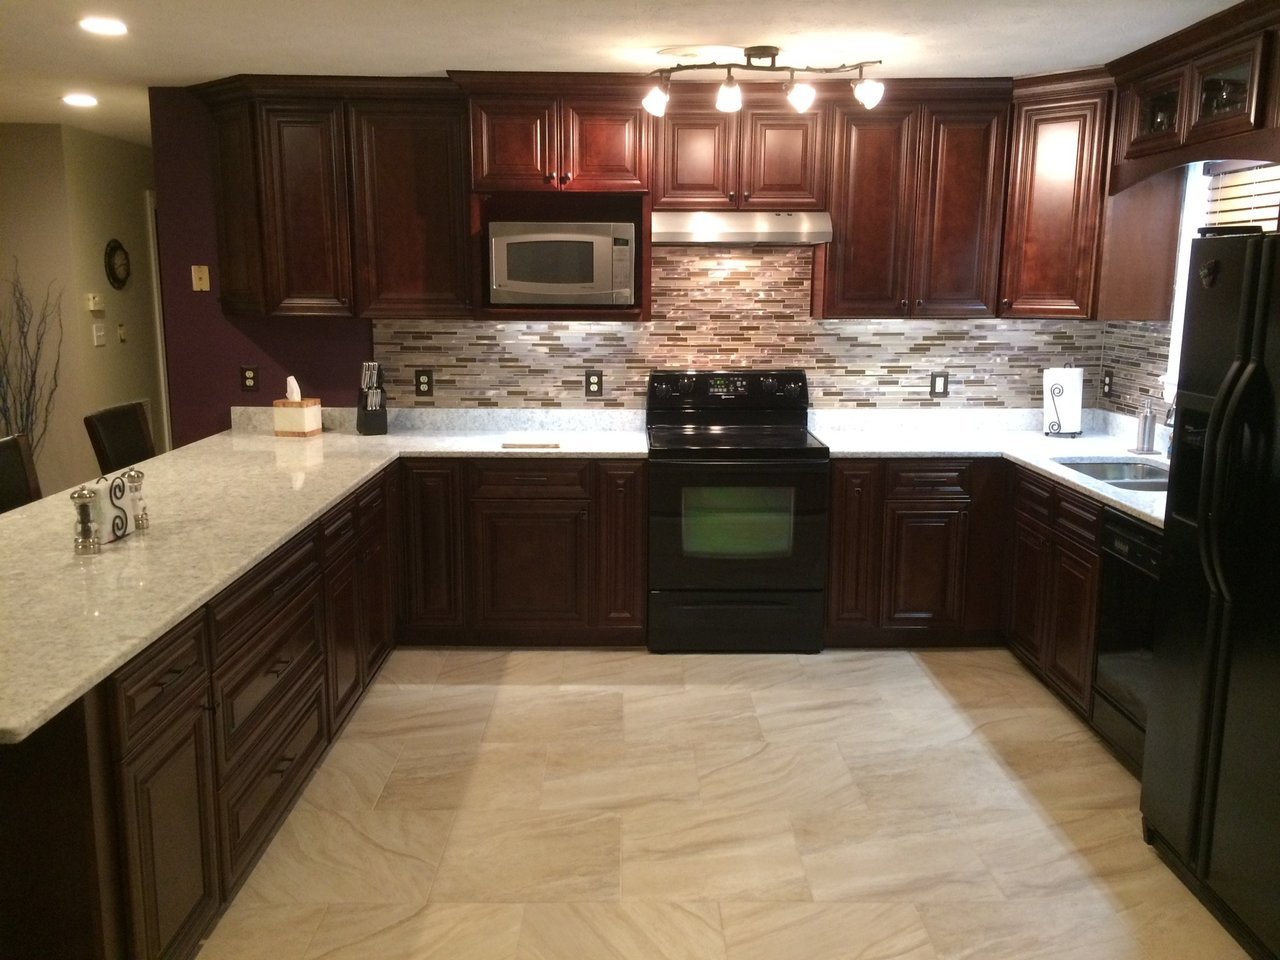 Matching Countertops With Cabinets 5 Tips For Matching Kitchen Cabinets And Countertops